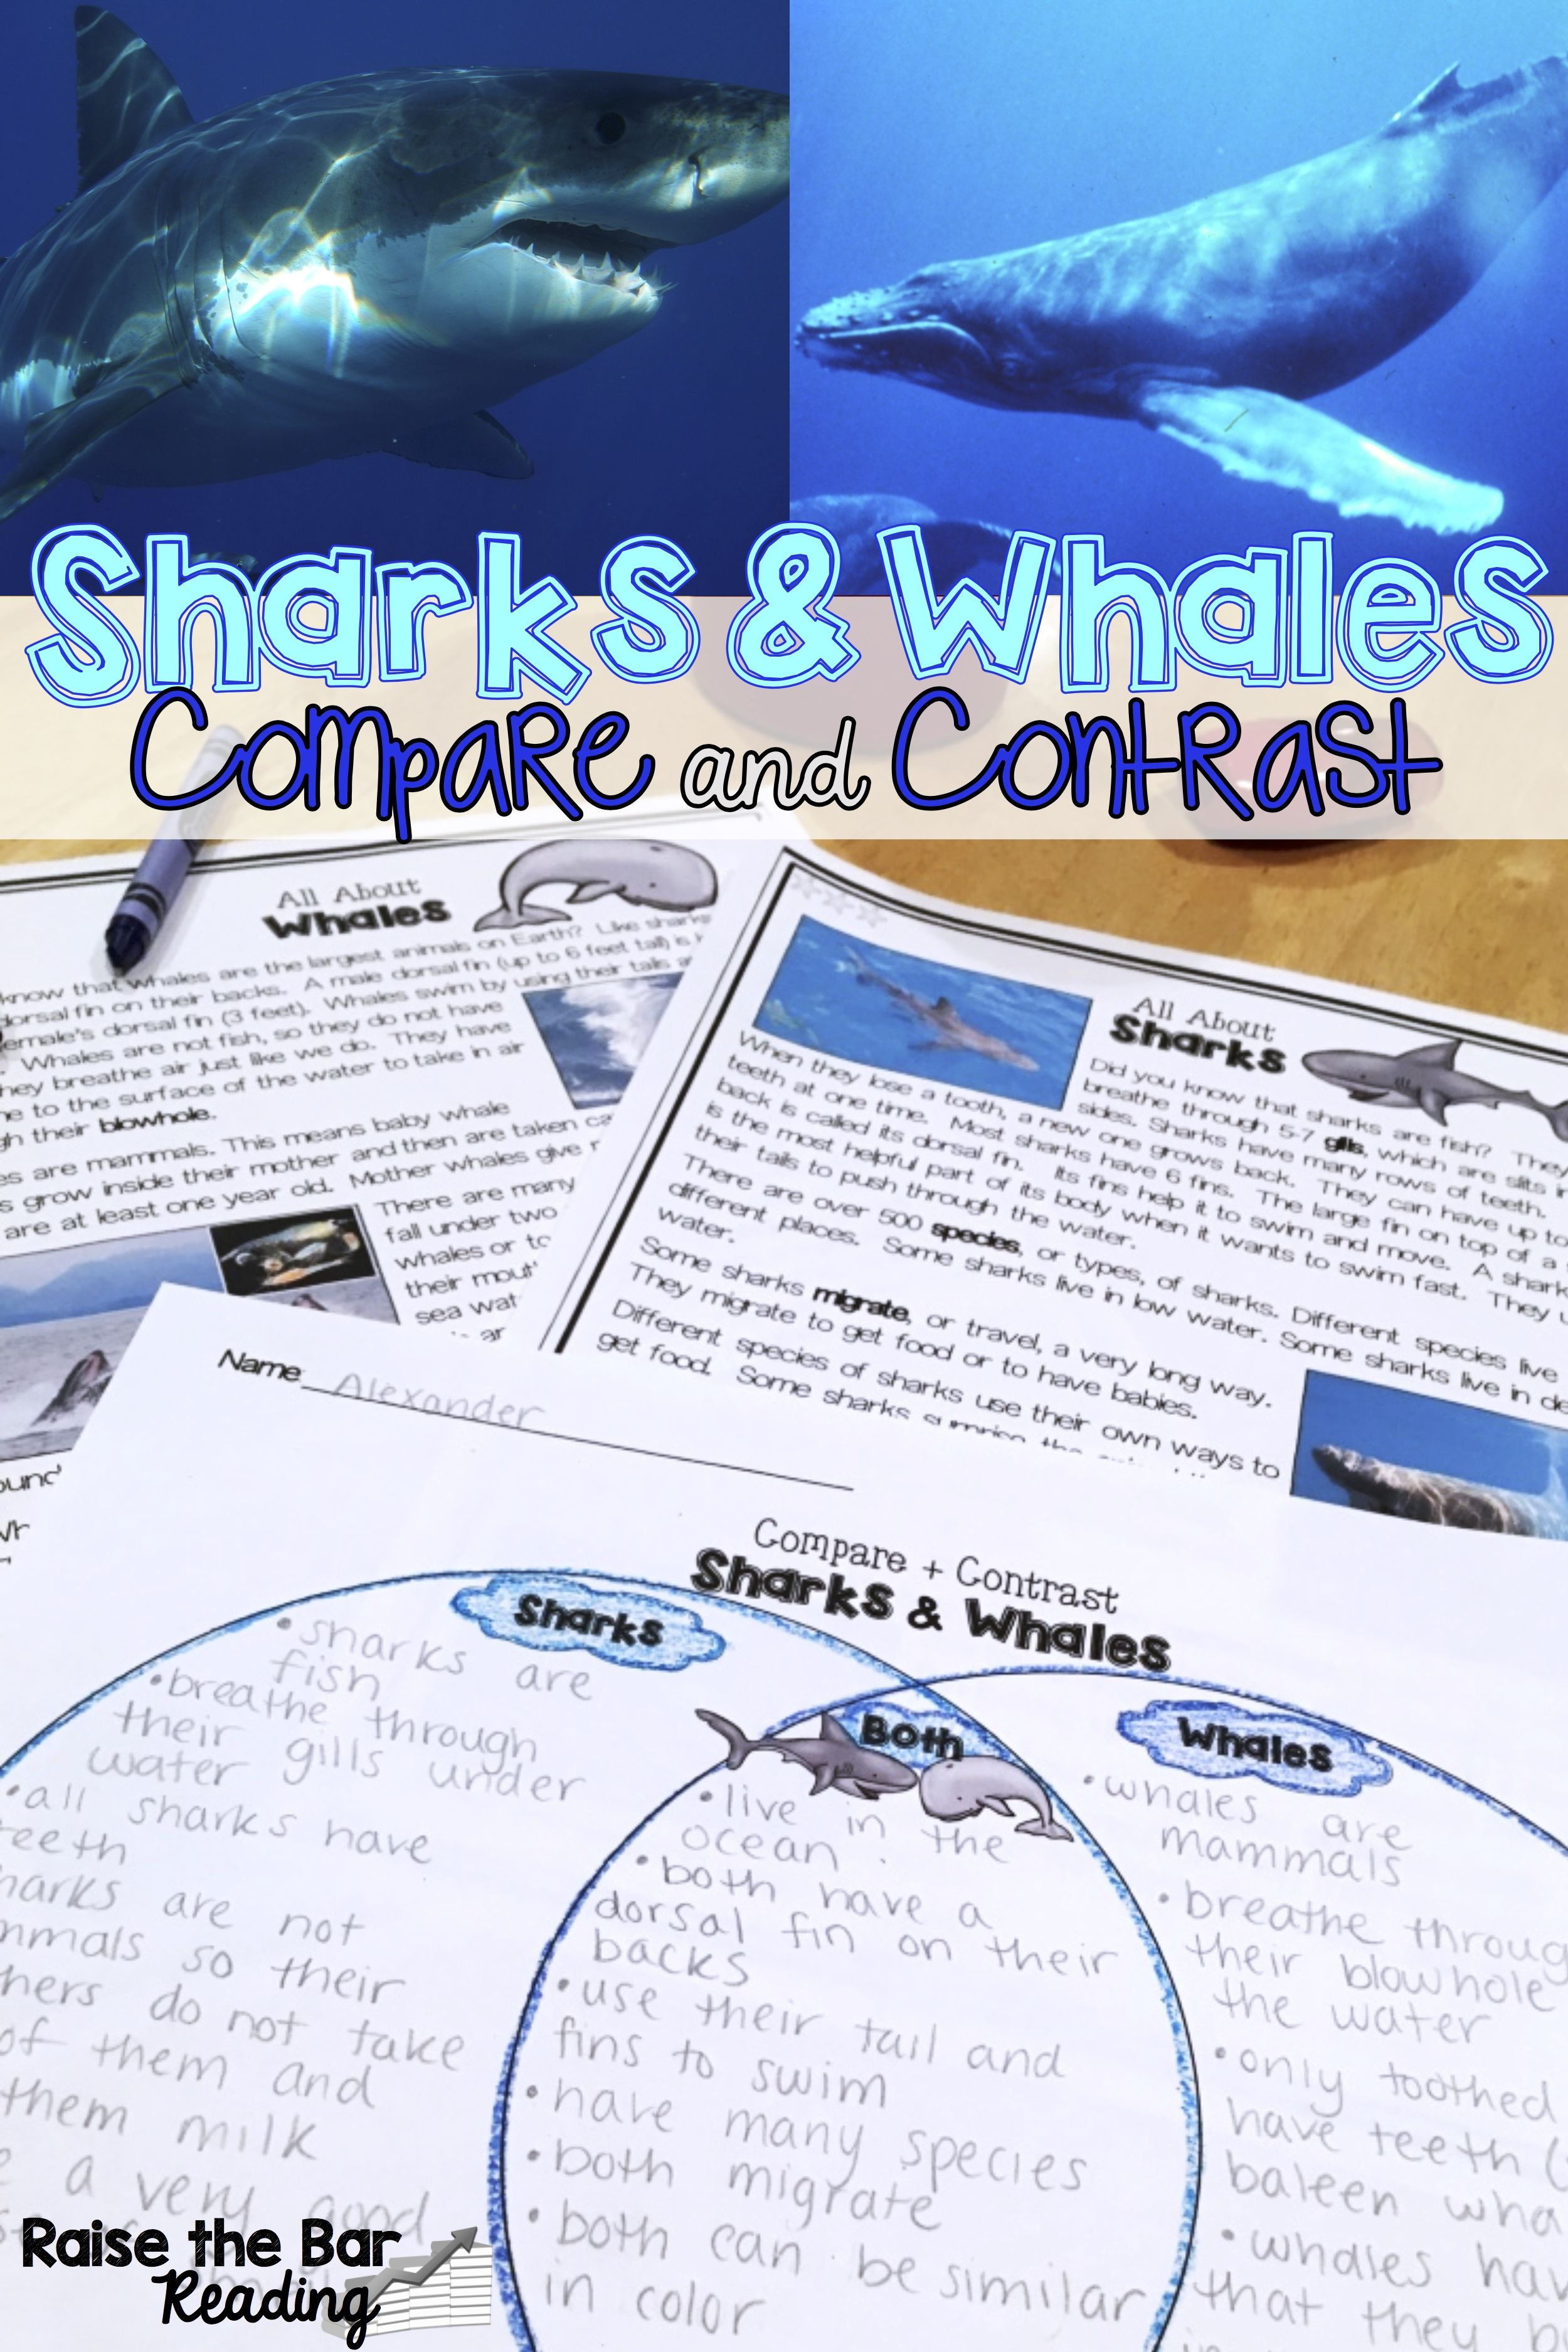 Whales And Sharks Compare And Contrast Differentiated Reading Passages Differentiated Reading Passages Reading Passages Differentiated Reading [ 3750 x 2500 Pixel ]